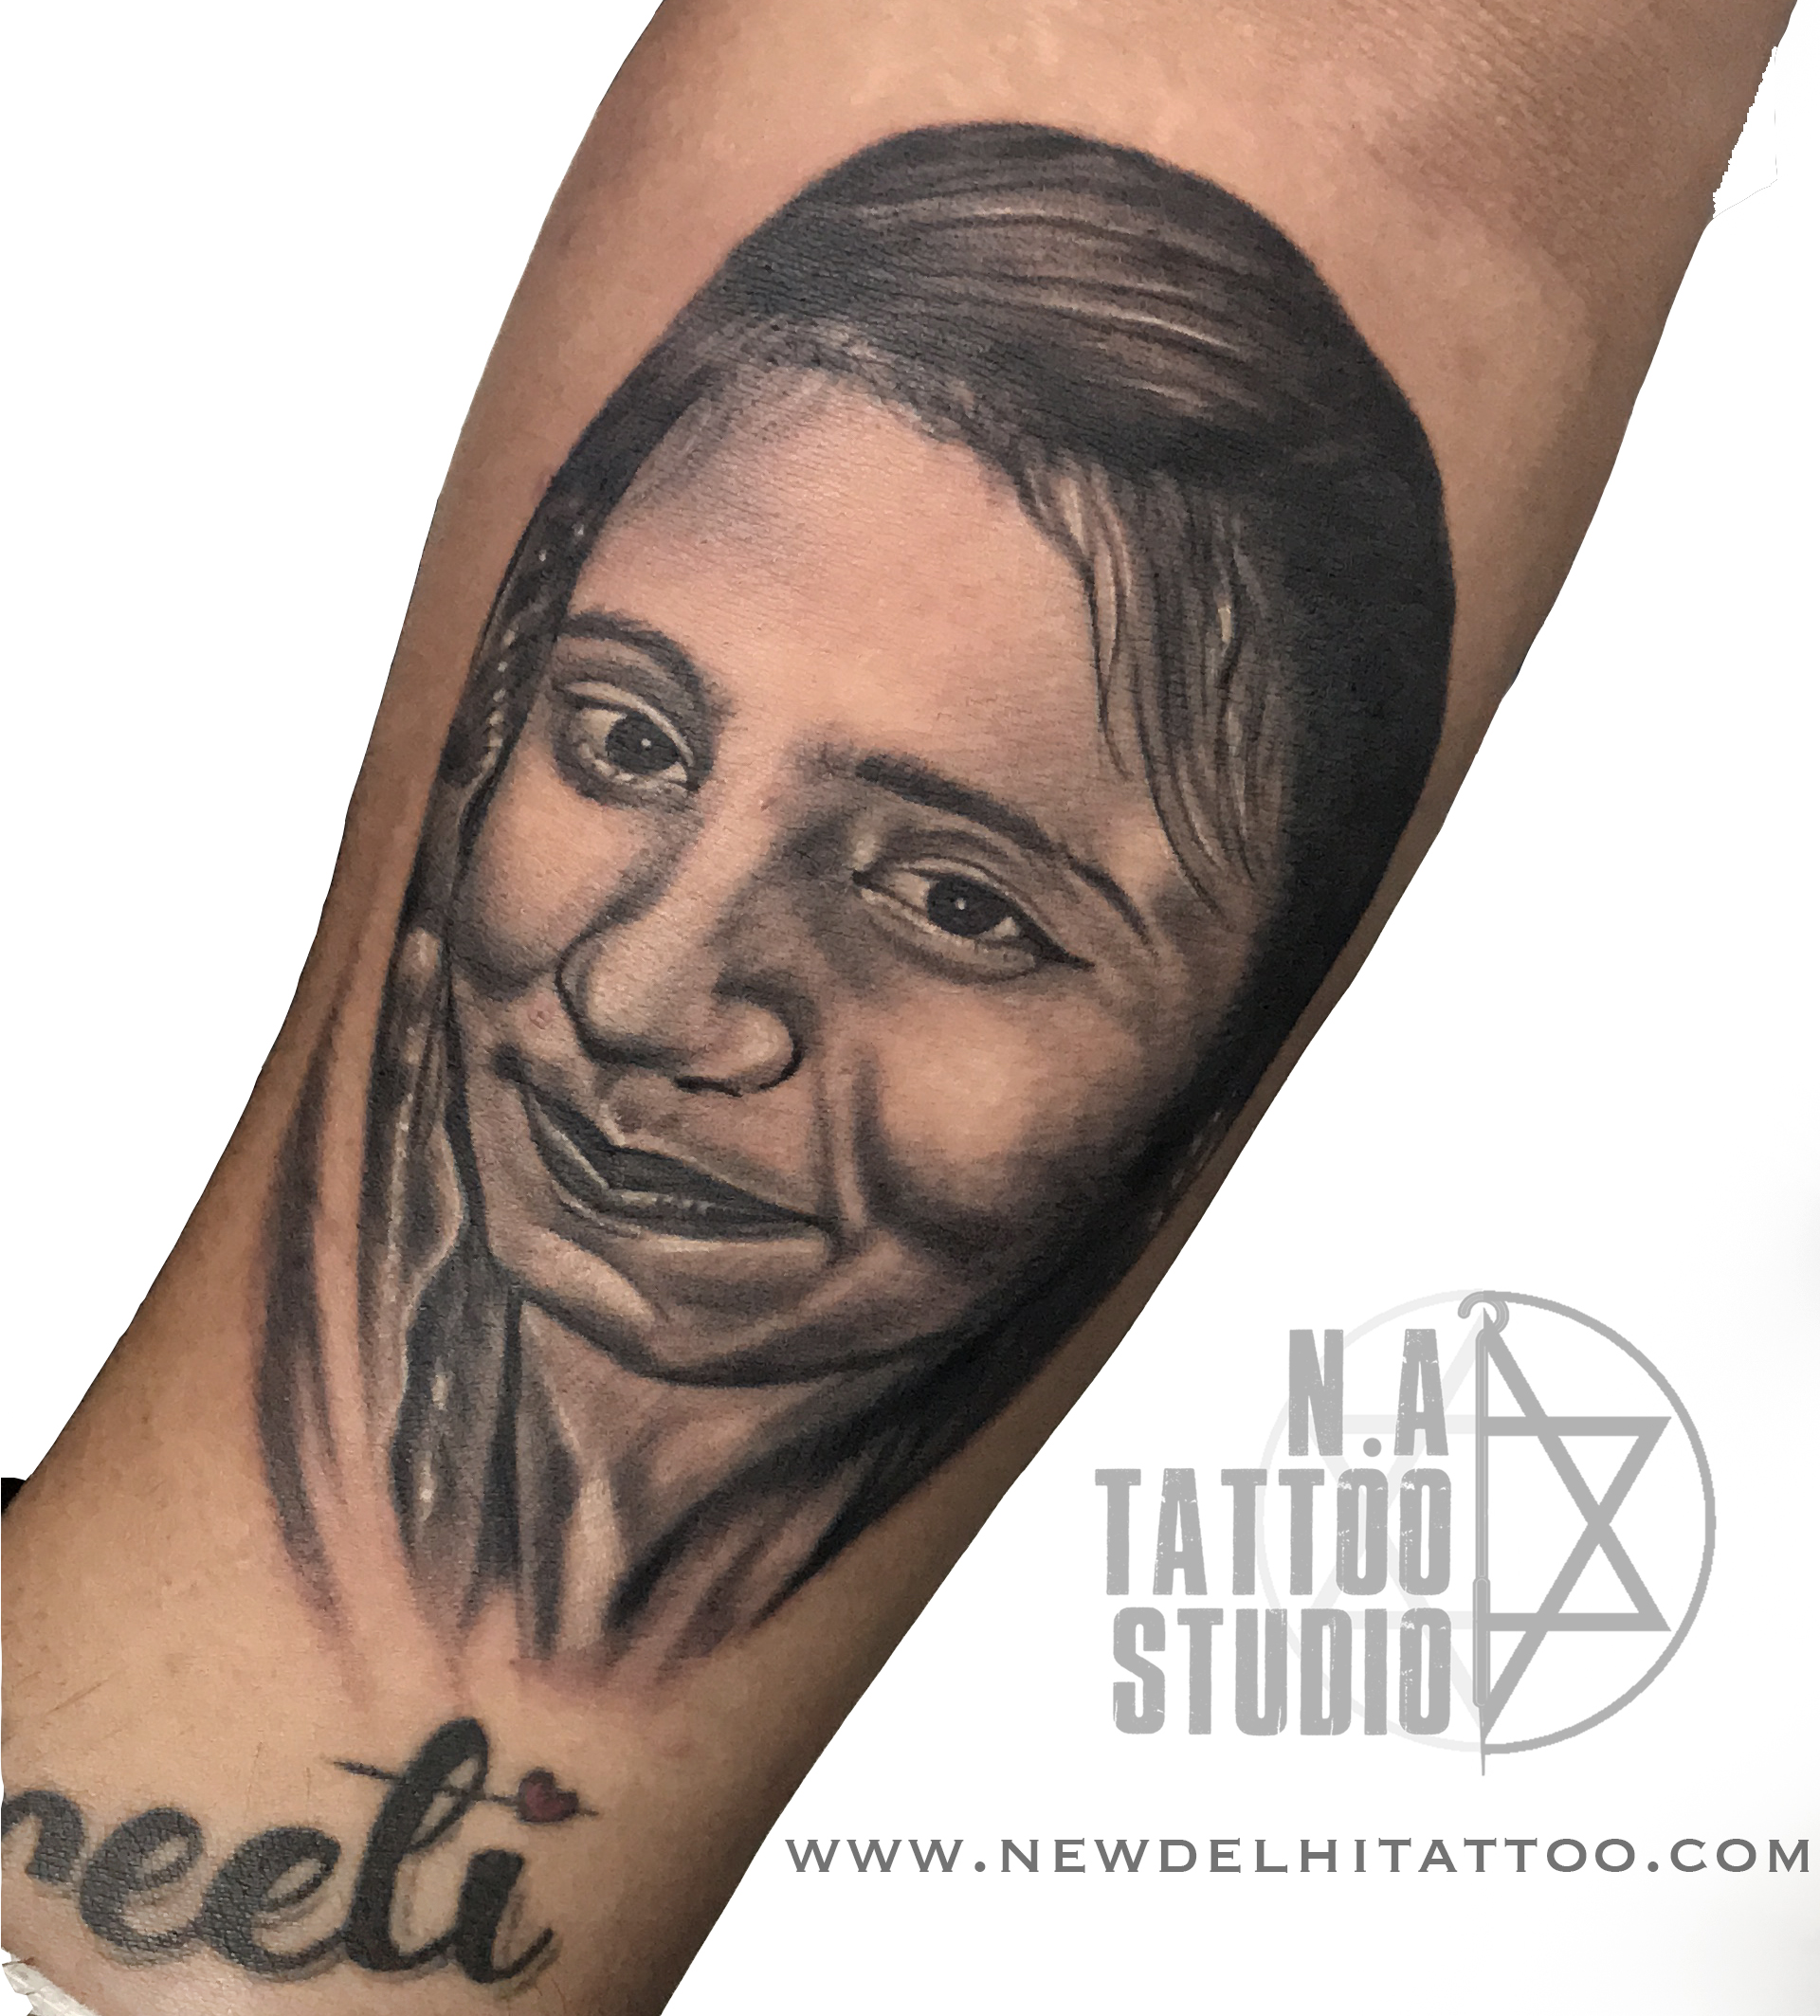 portrait tattoo natattoostudio